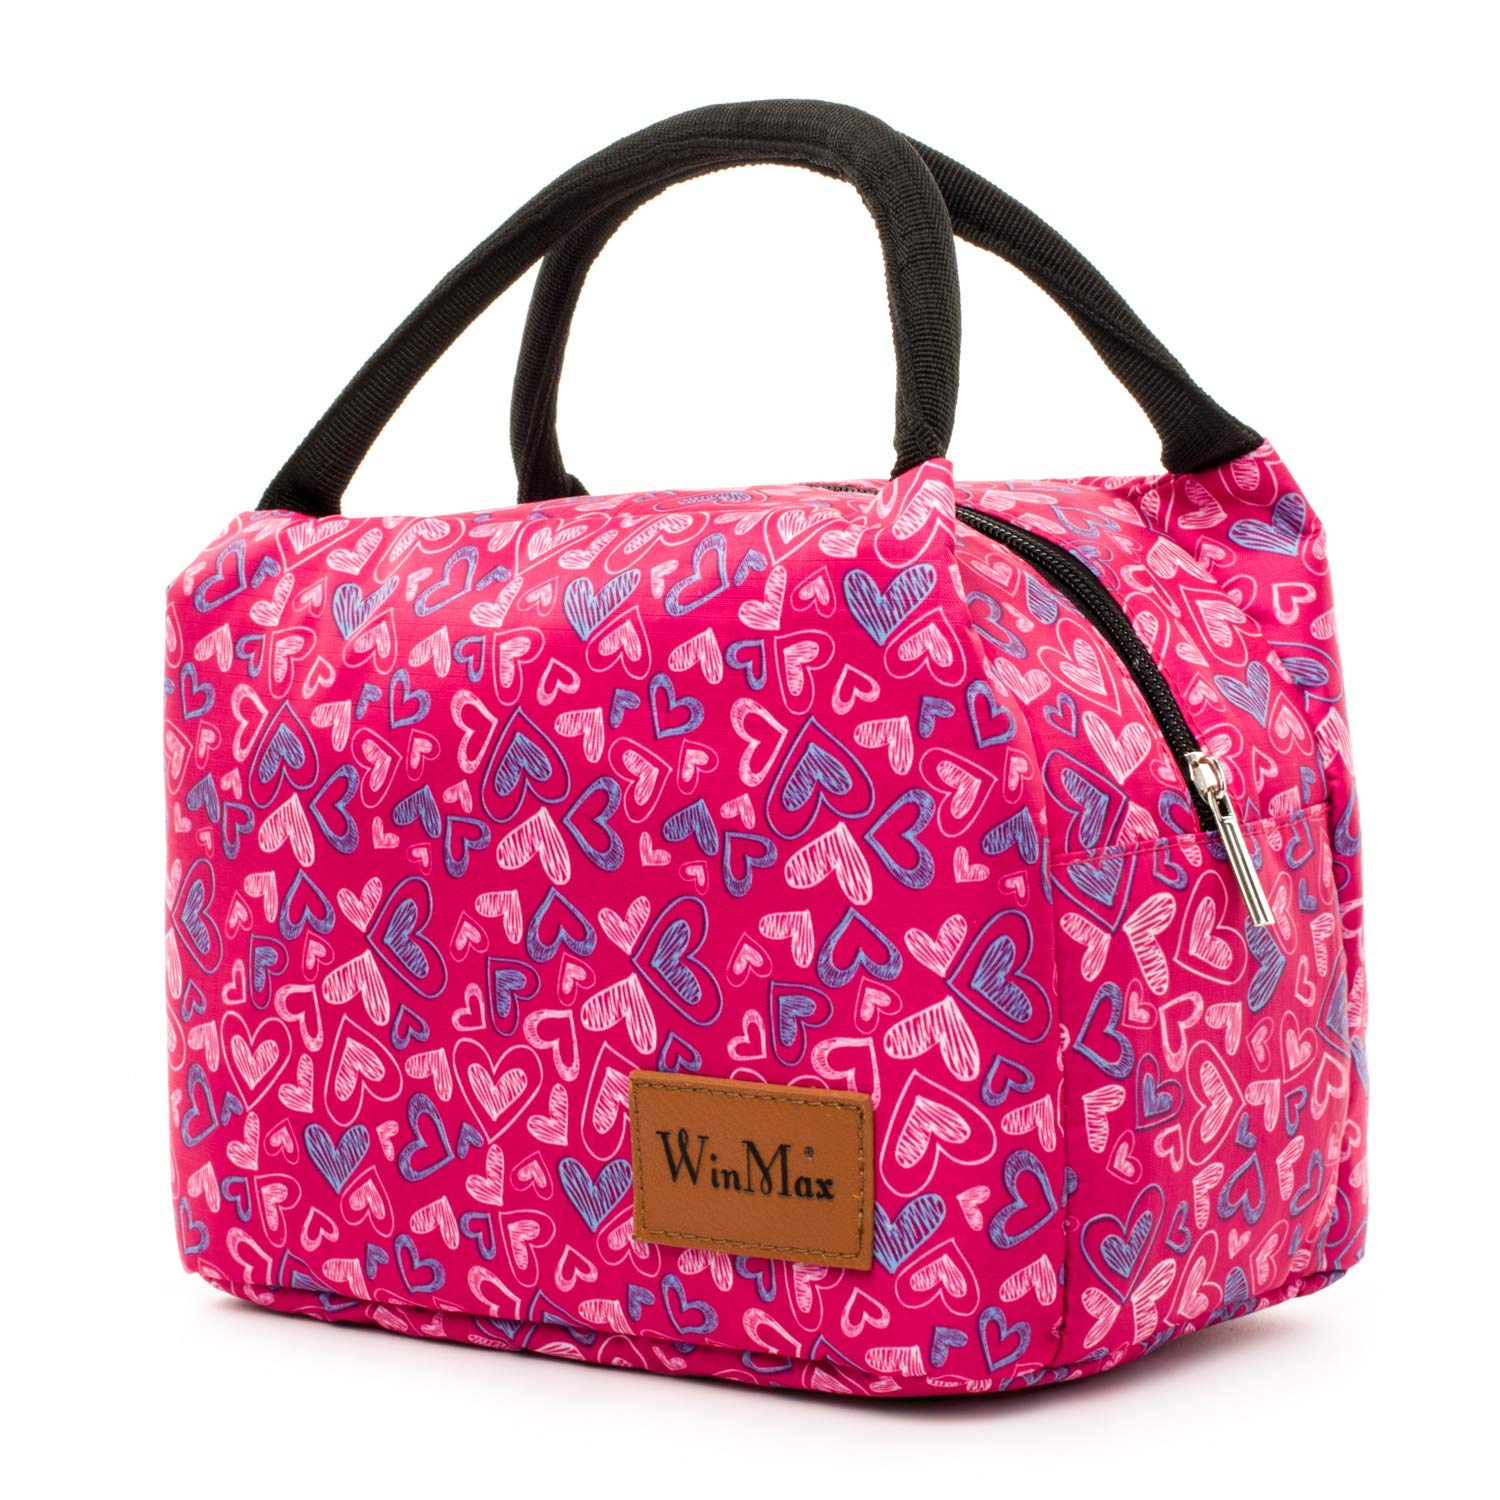 Portable Insulated Lunch Bag for Women and Kids Reusable Tote Cooler Bag for Picnic Beach Camping by Winmax (Purple)